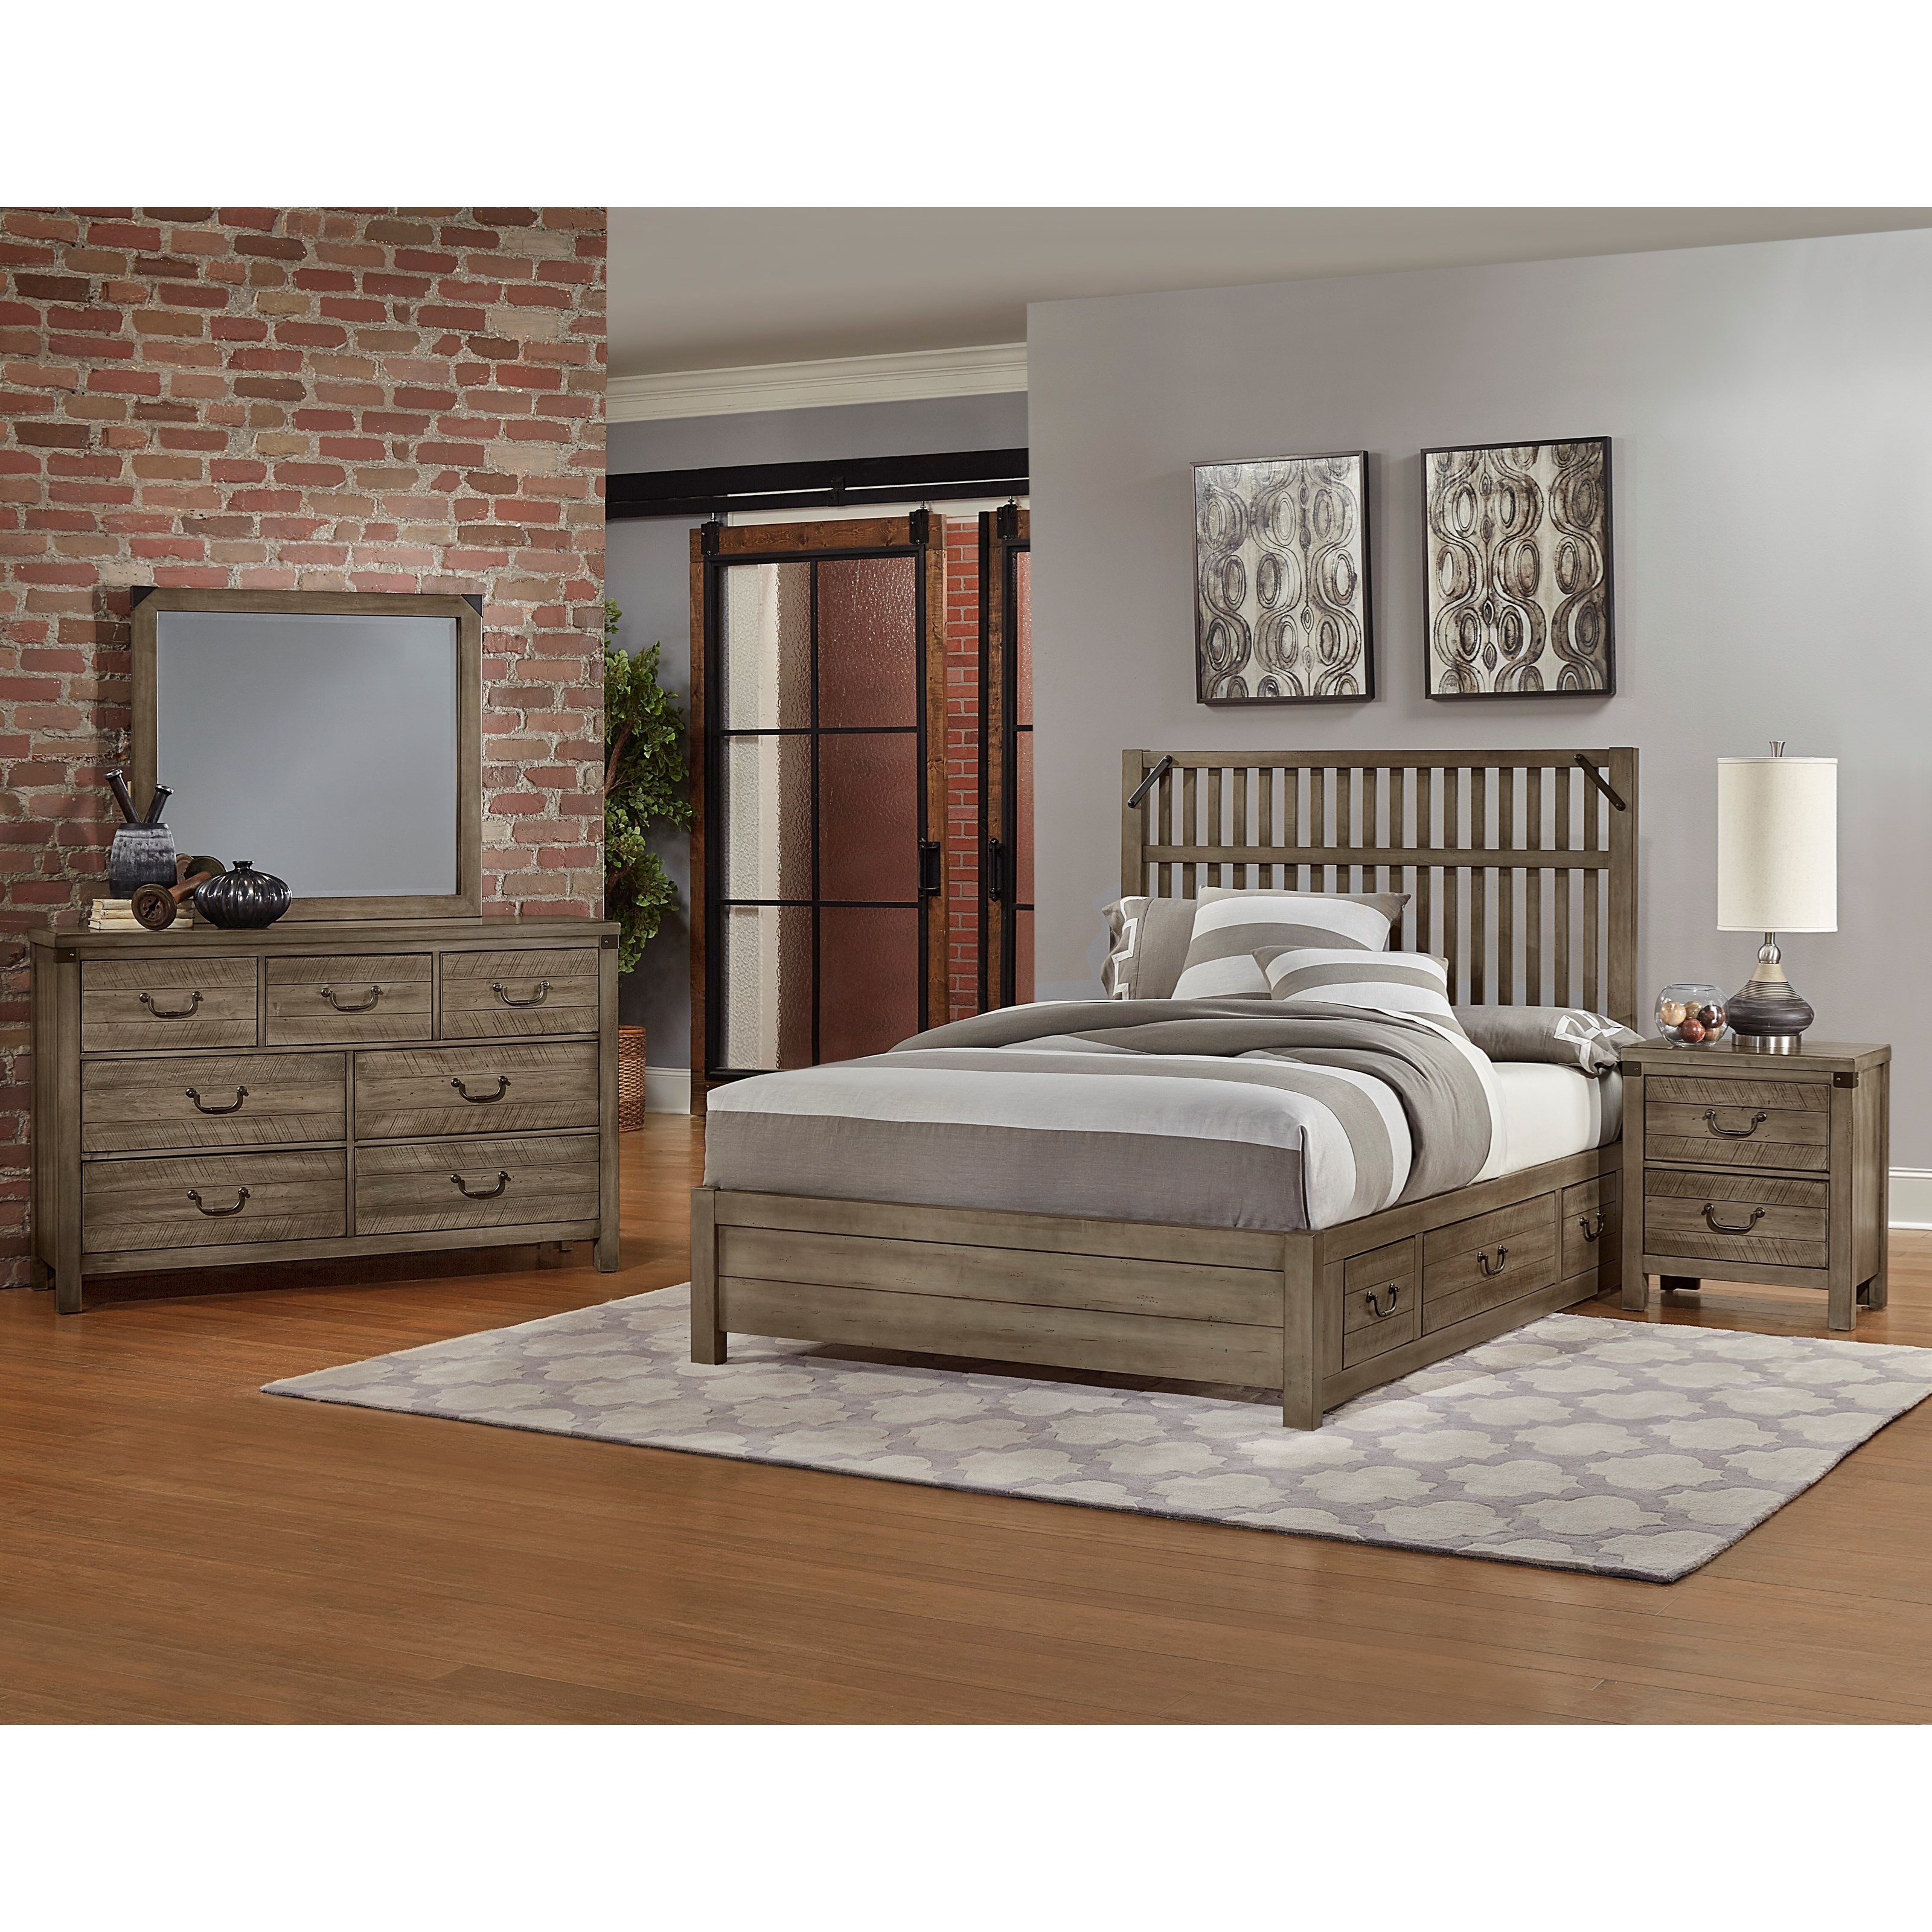 Sedgwick Queen Bedroom Group by Artisan & Post at Northeast Factory Direct